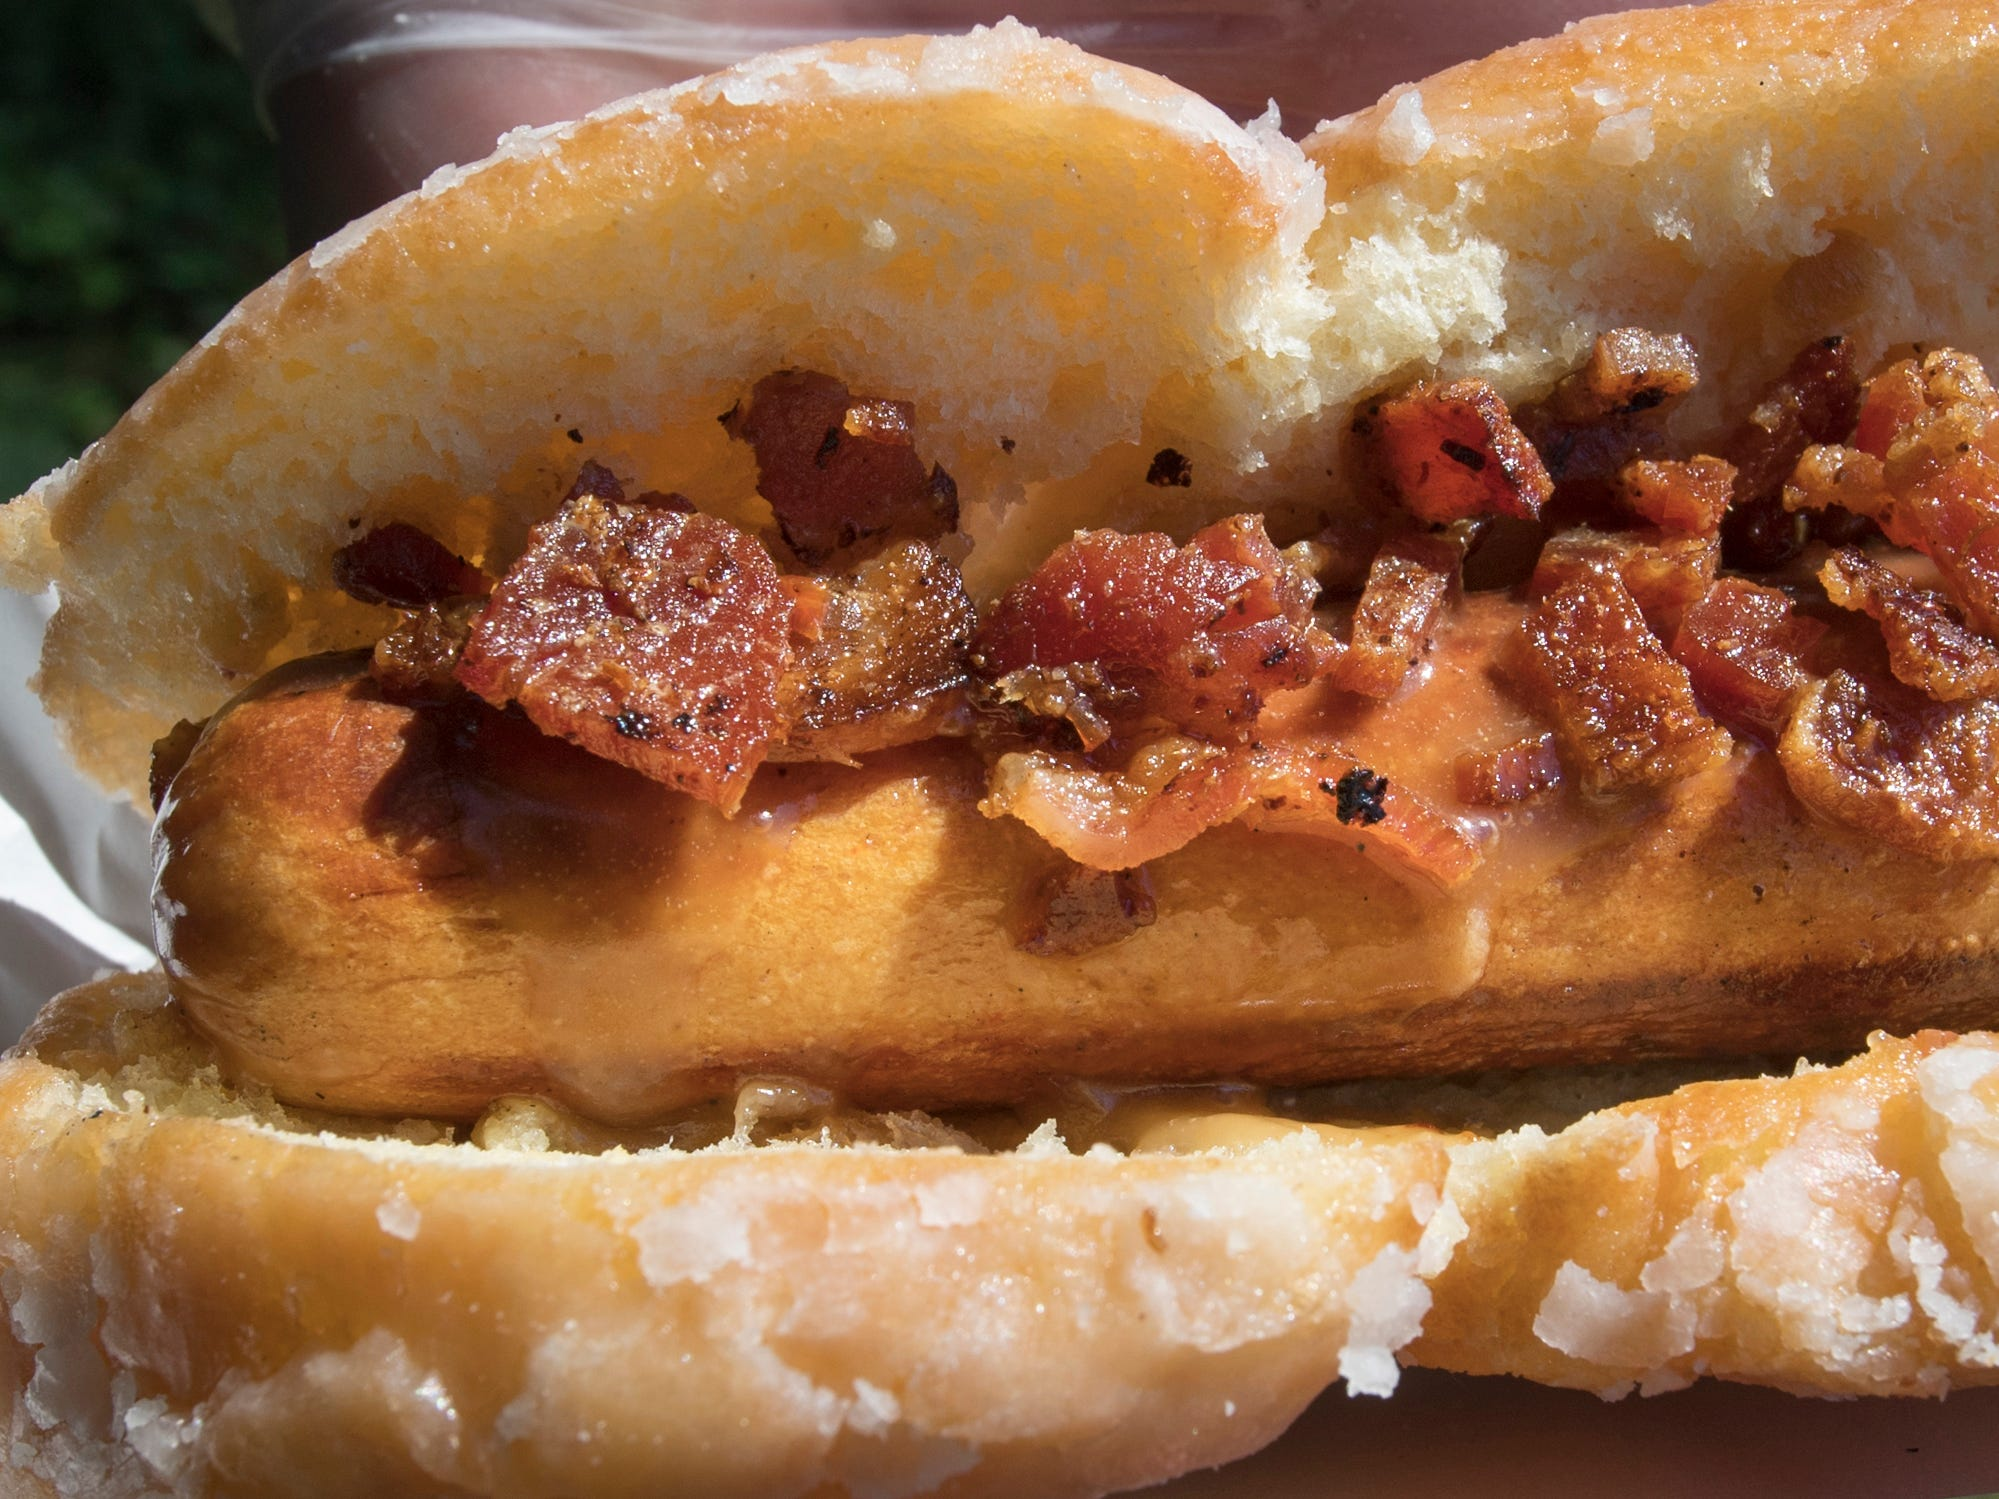 A 'Glazed and Confused' gourmet hot dog created by York Area Regional Police Department during the York County Crime Stoppers Top Dog Contest  featured a cayenne sprinkled hot dog dipped in molten maple icing inside a glazed doughnut bun, topped with crumbled applewood smoke bacon.